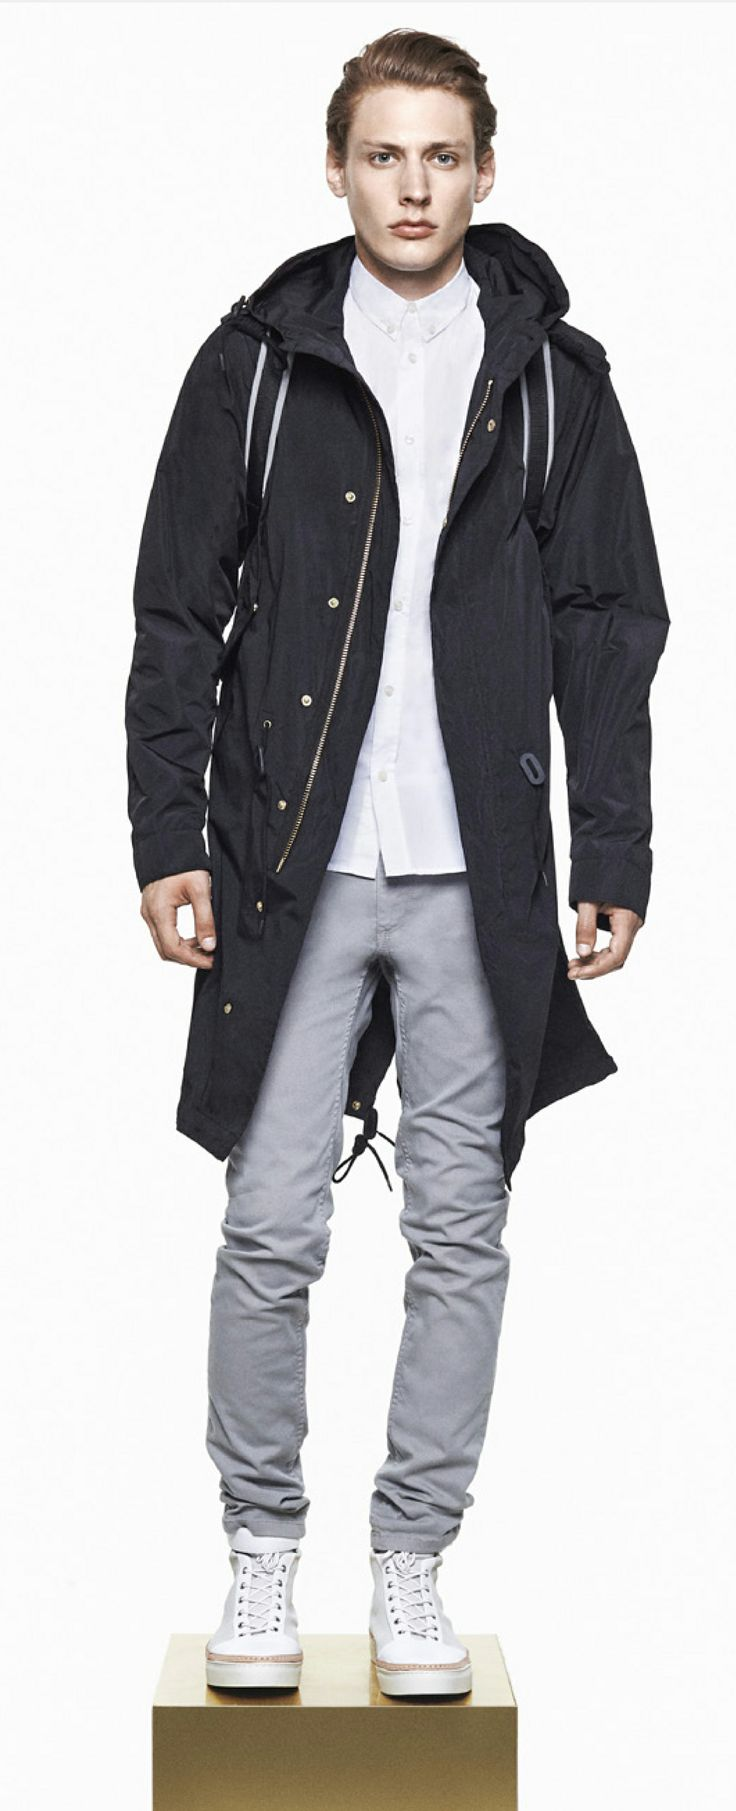 Whyred - COLT for this rainy saturday  http://www.temporaryshowroom.com/shop/index.php?label=169